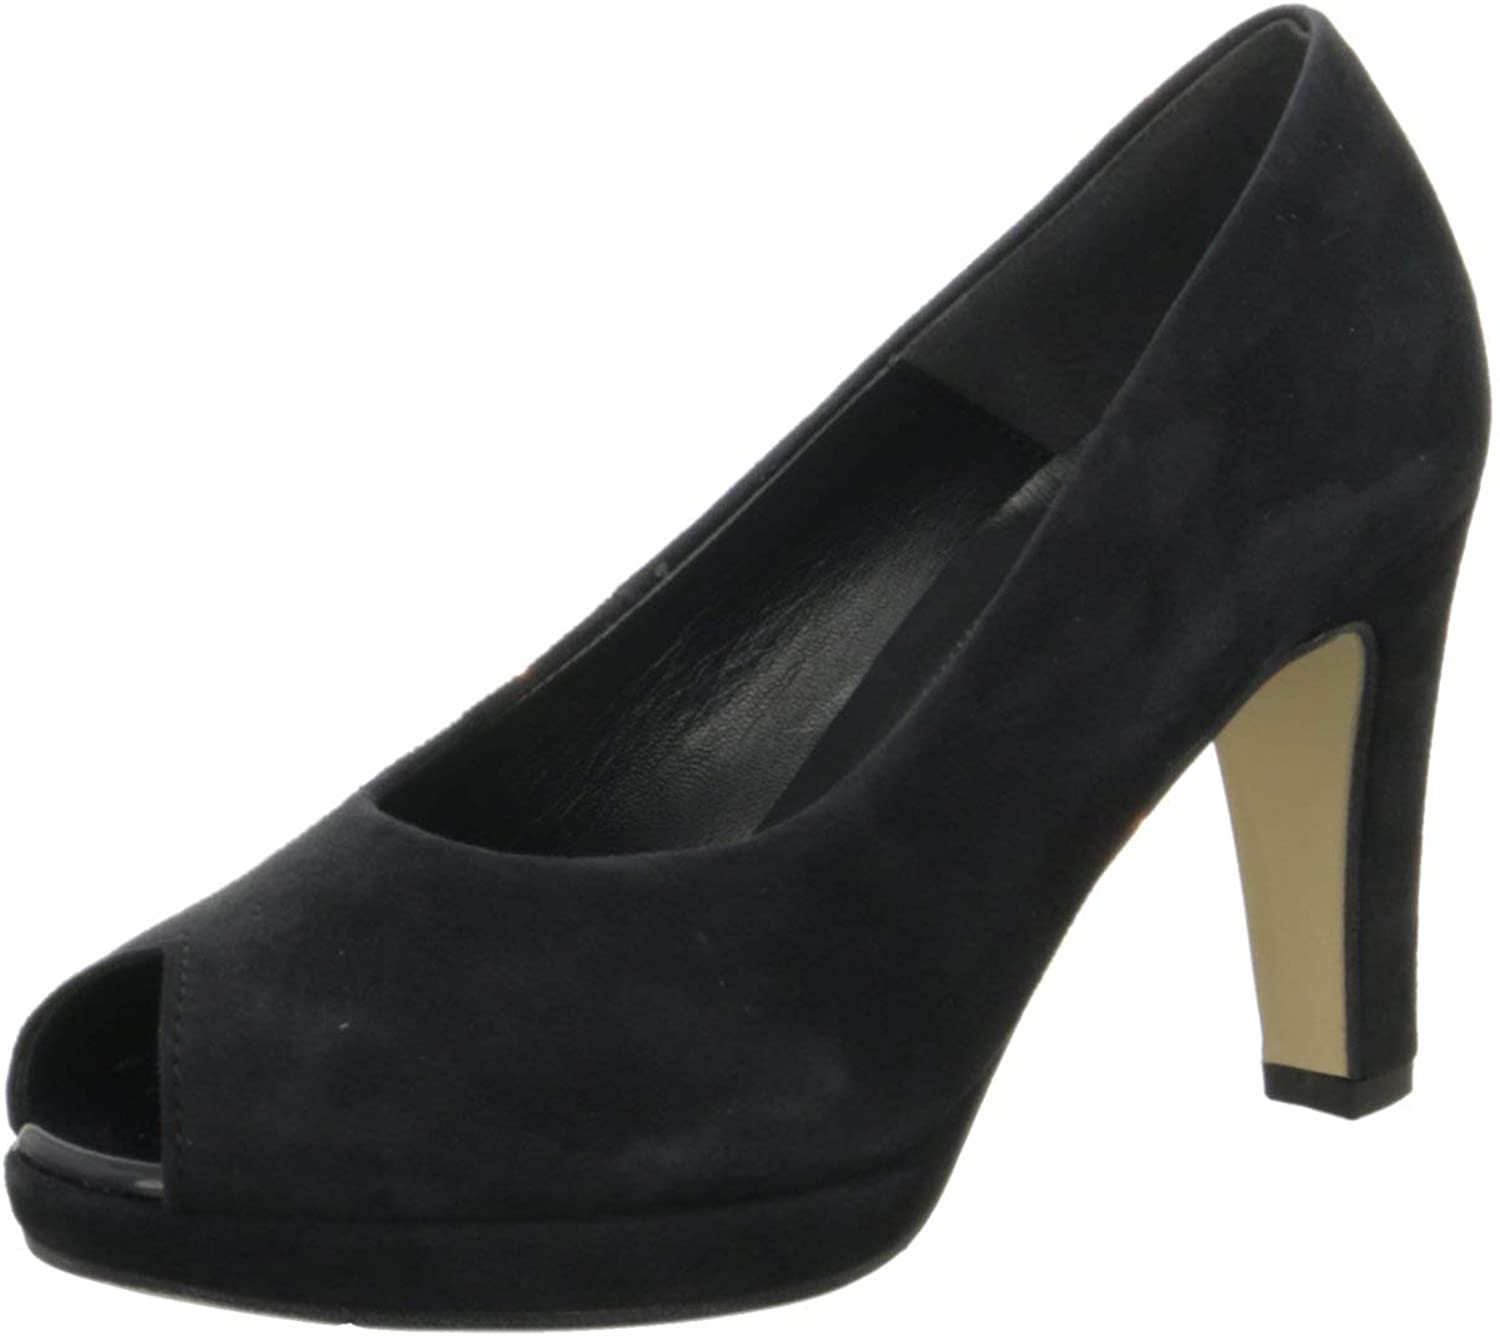 Gabor Damen Pumps NV 1.390.16 blau 608093